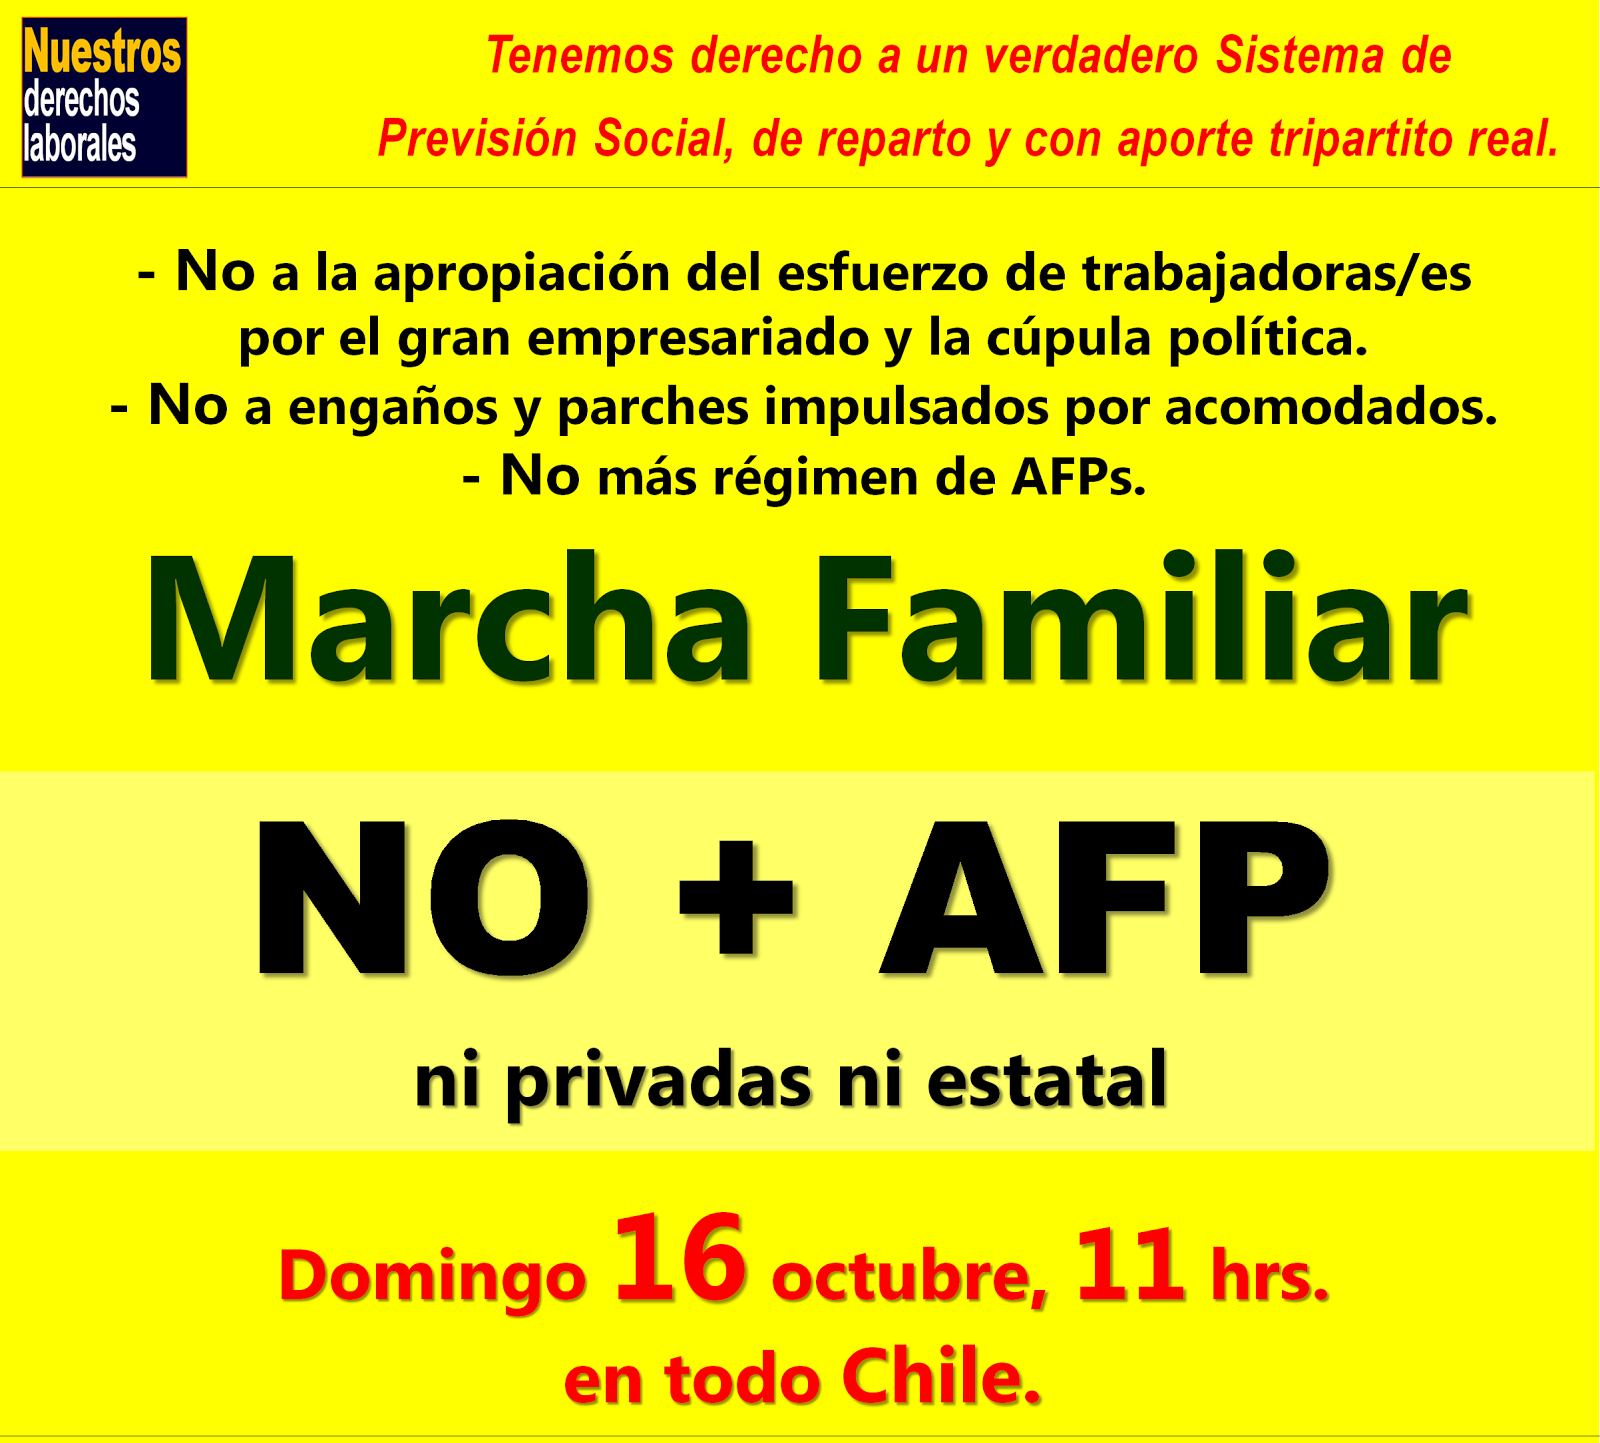 No más AFP, ni privadas ni estatal.